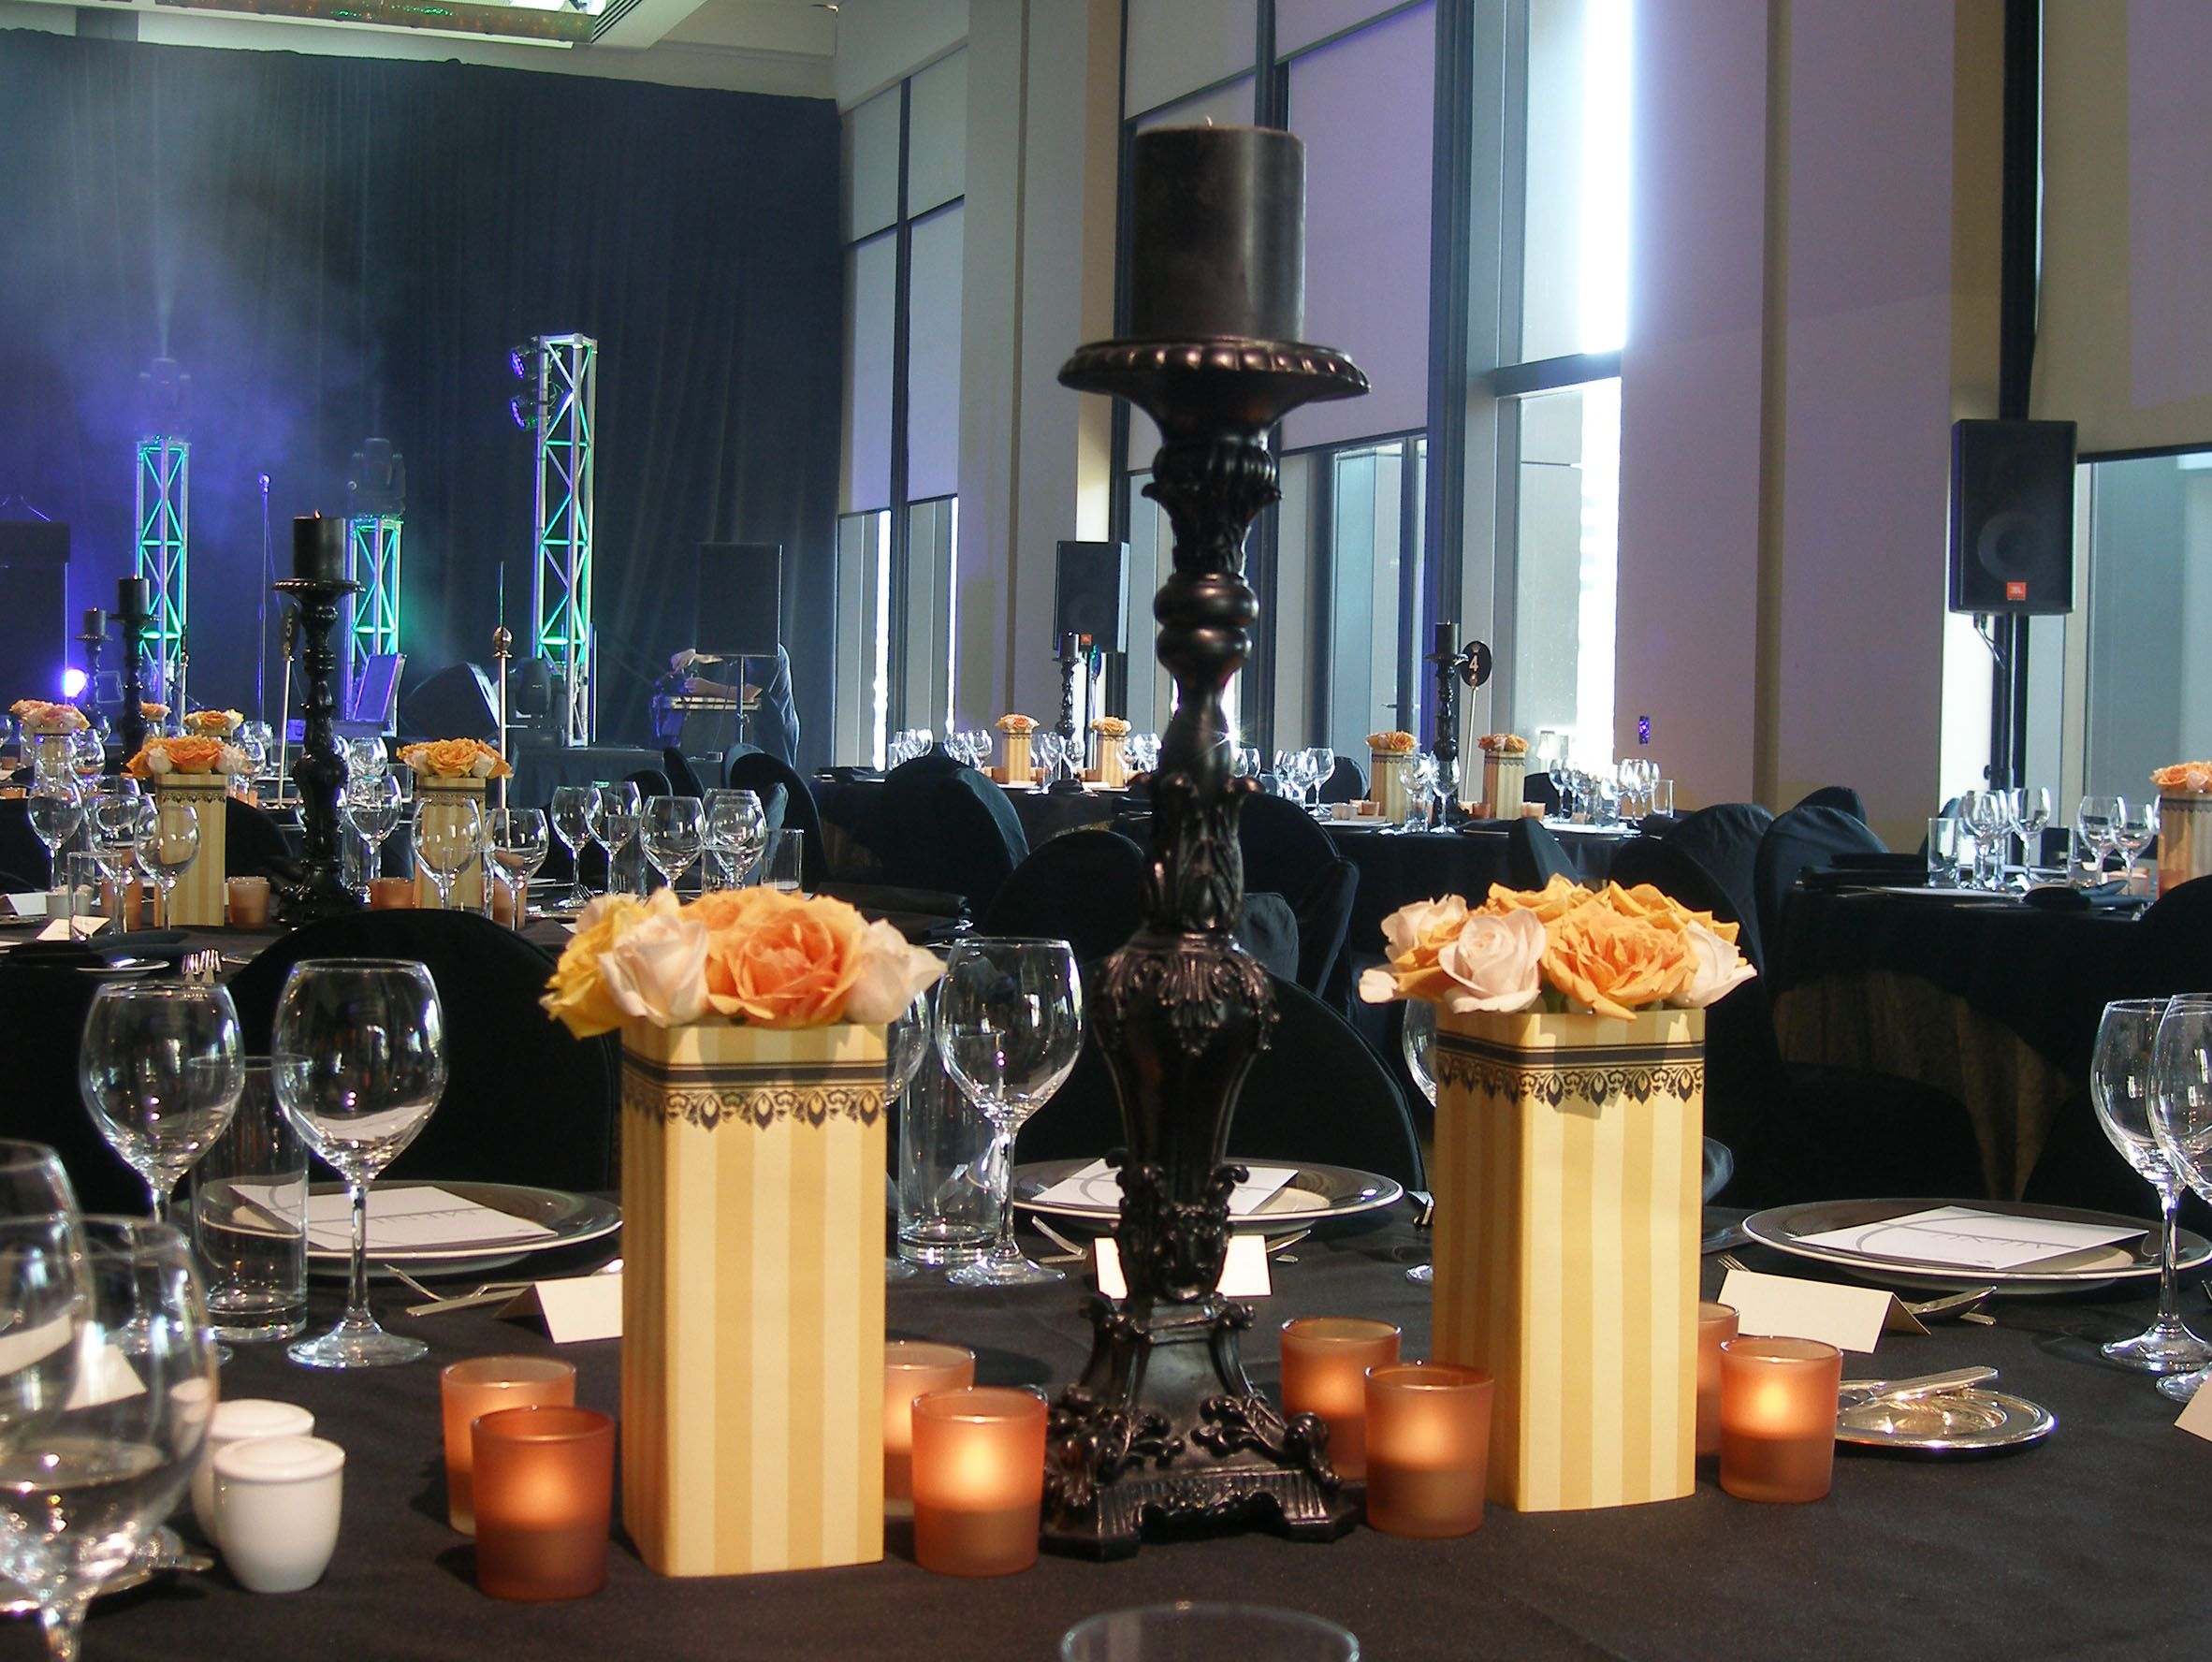 A Black And Gold Themed Corporate Event But With Blue And White